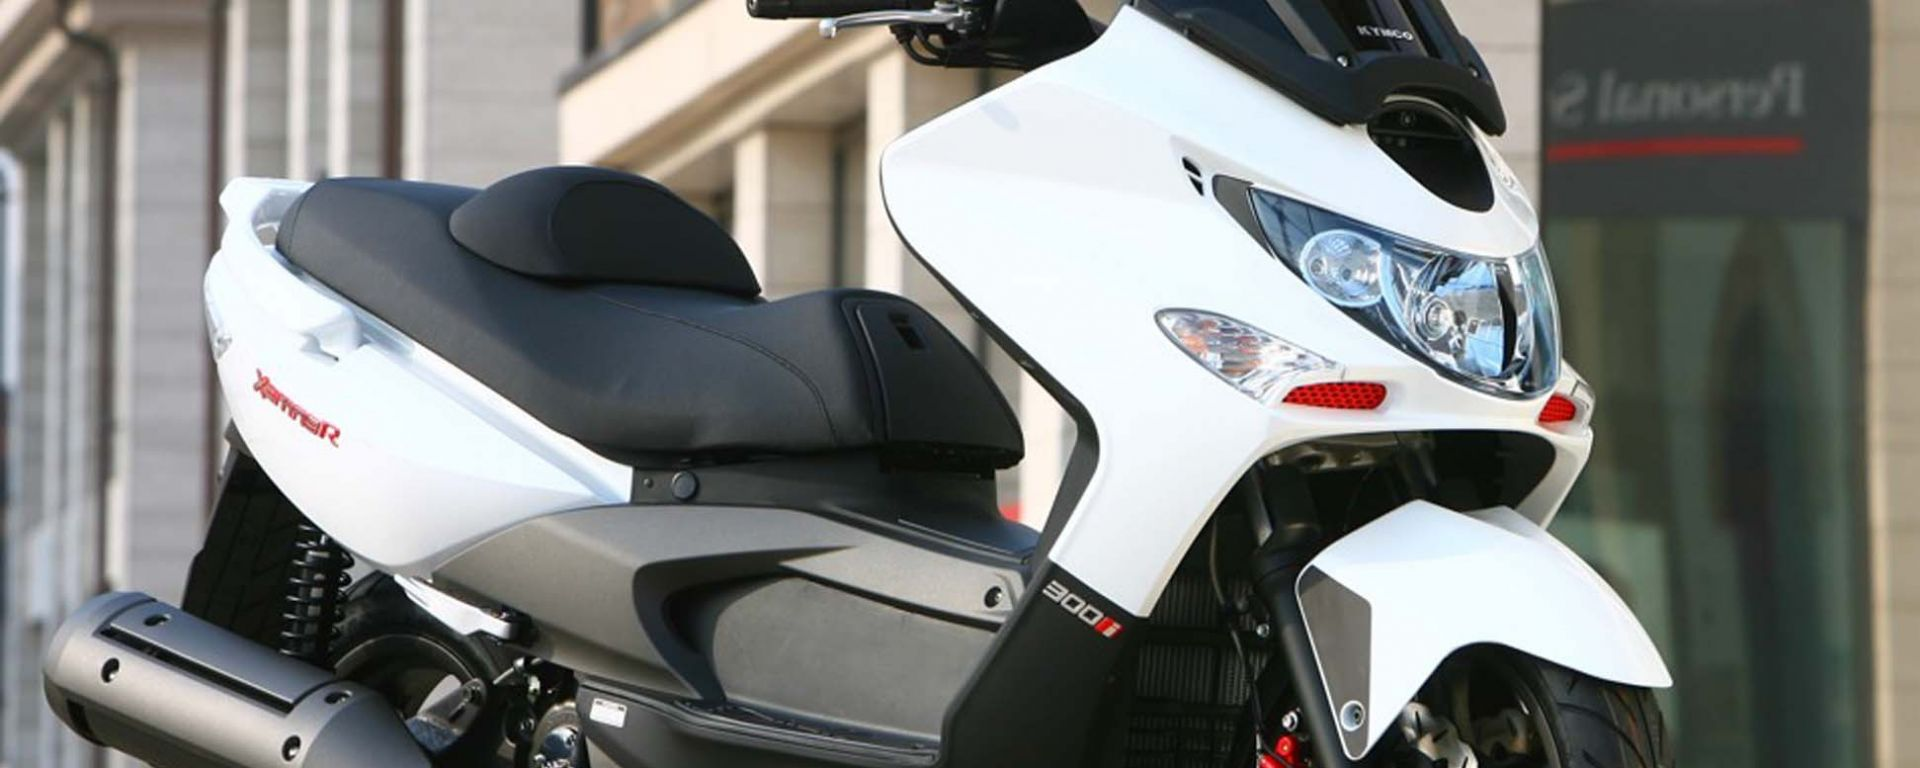 Kymco scooter 2008